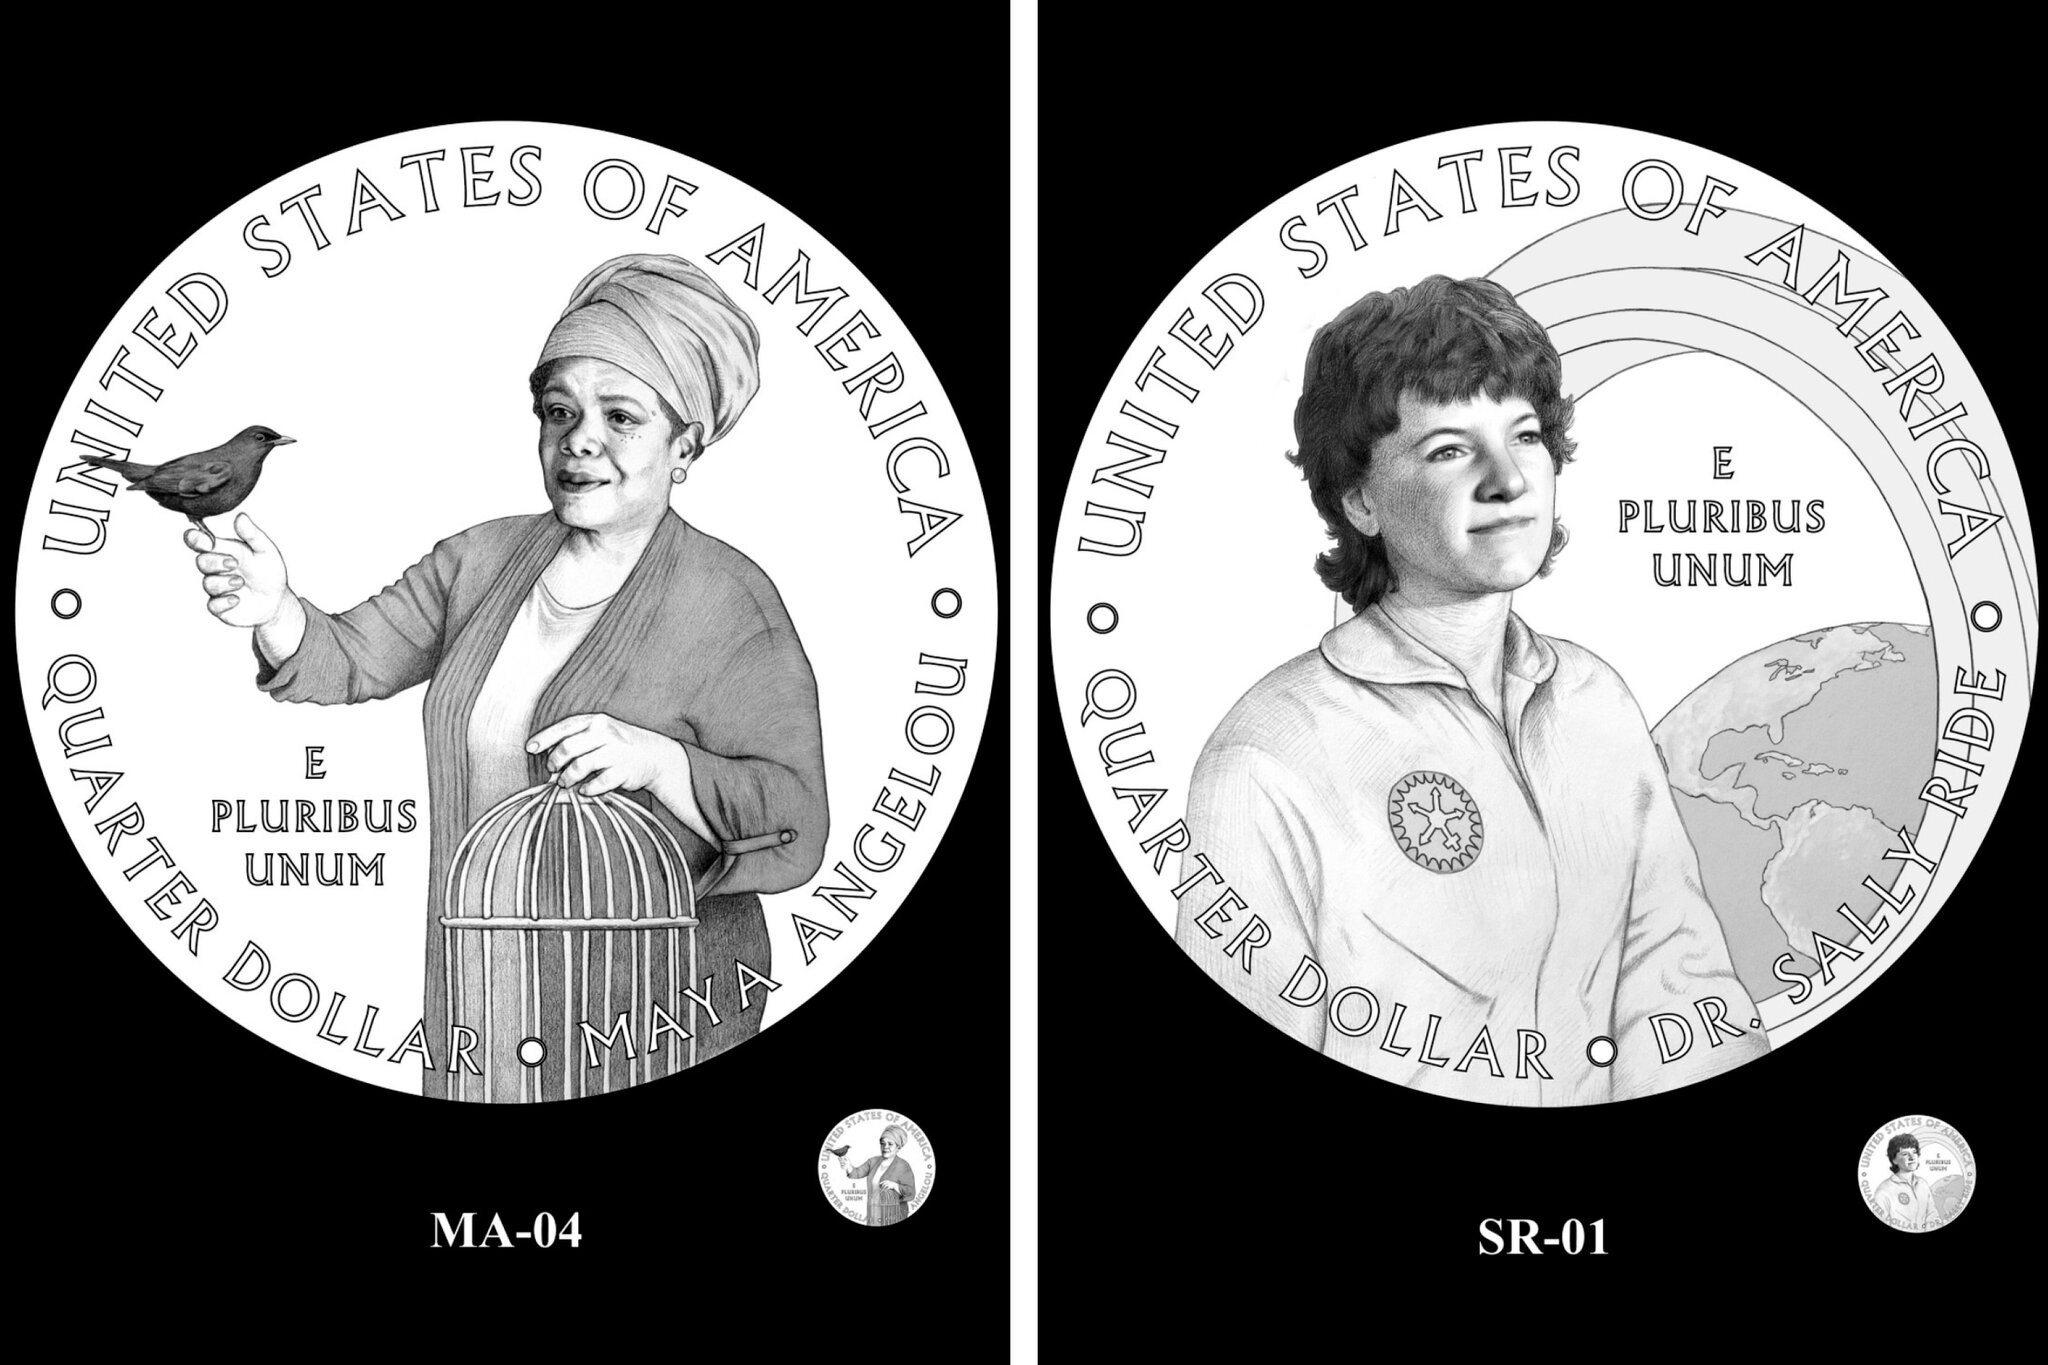 US Mint's New Quarter Series Will Feature Prominent American Women